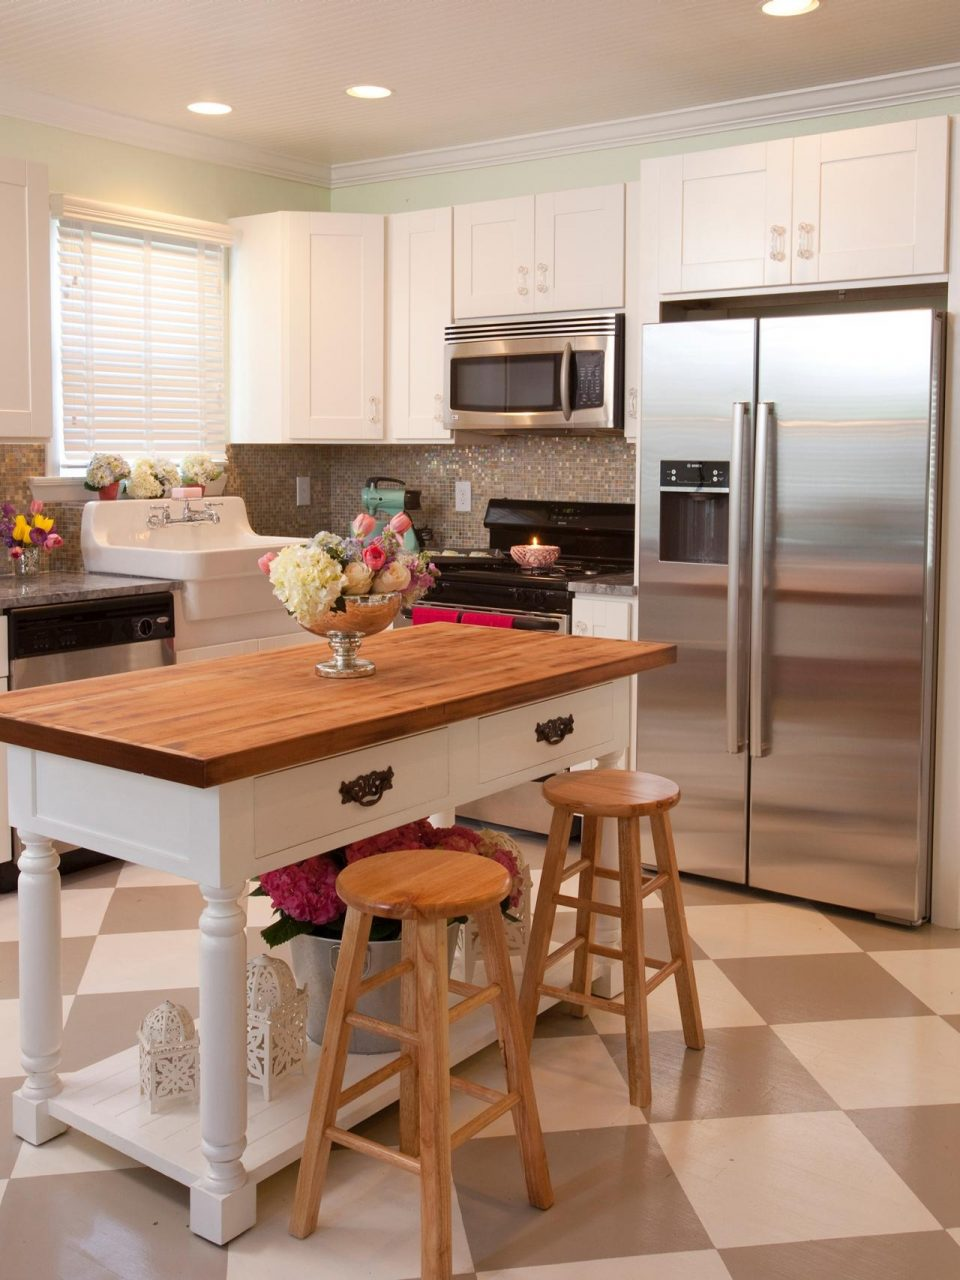 Pinterest Kitchen Island Diy Small Ideas With Seating Islands